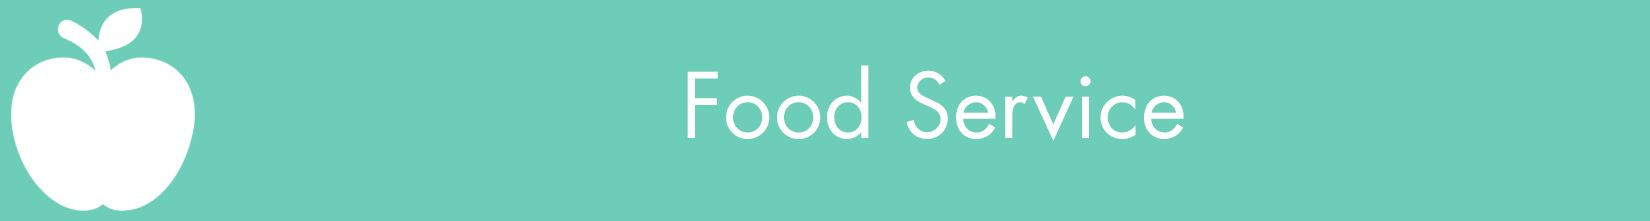 RTC Food Service Header Link